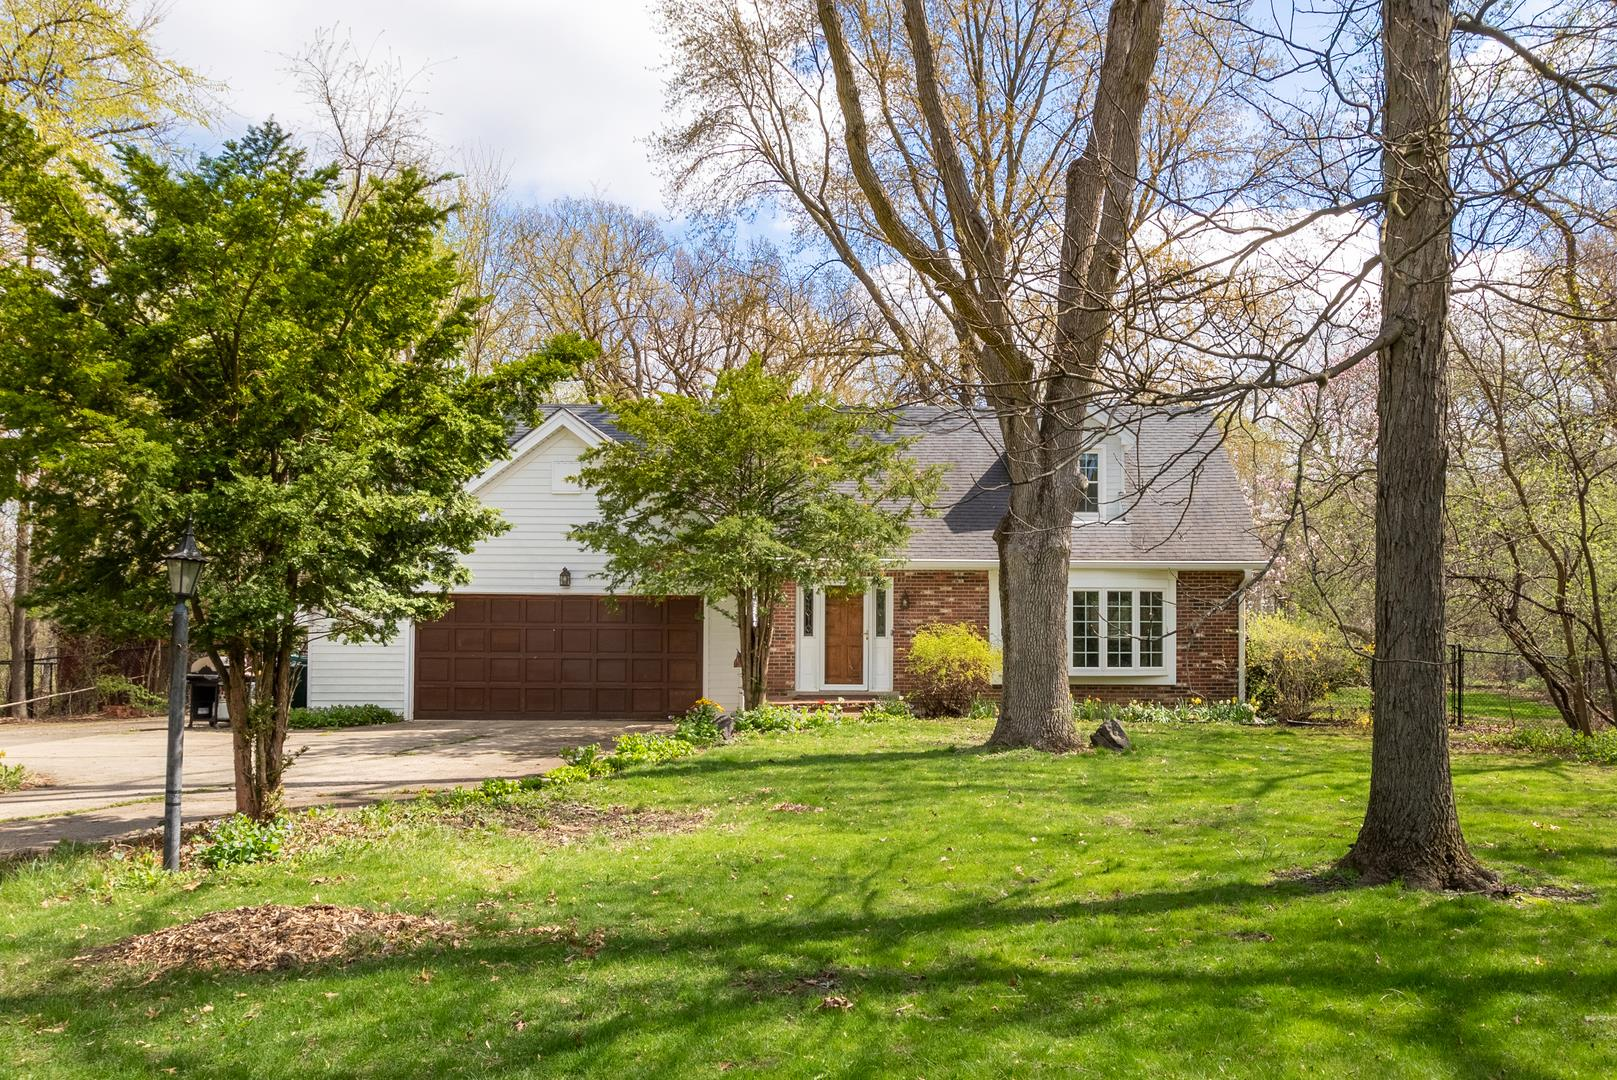 0N481 Indian Knoll Road, West Chicago, IL 60185 - #: 11053165